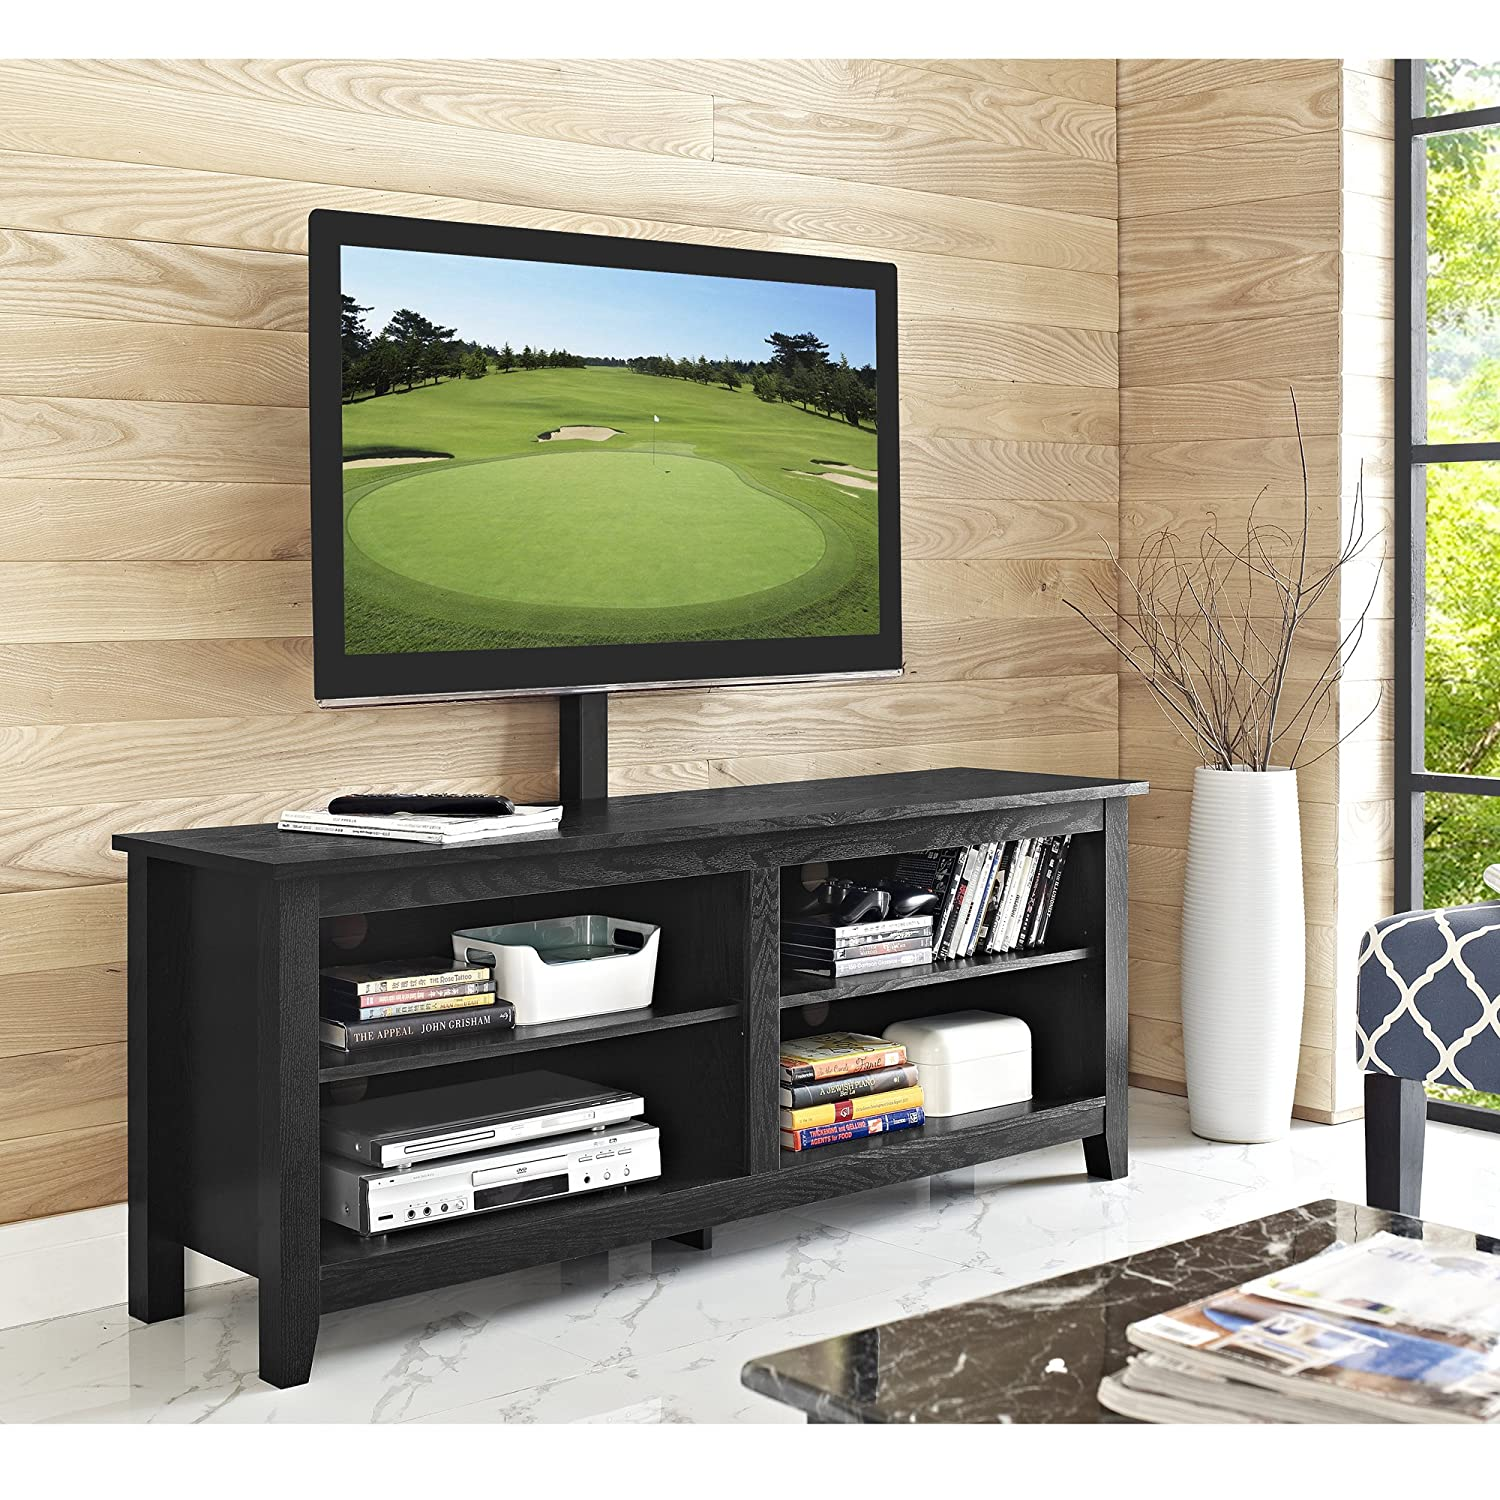 """WE Furniture Minimal Farmhouse Wood Universal Stand with Mount for TV's up to 64"""" Flat Screen Living Room Storage Shelves Entertainment Center, 58 Inch, Black"""